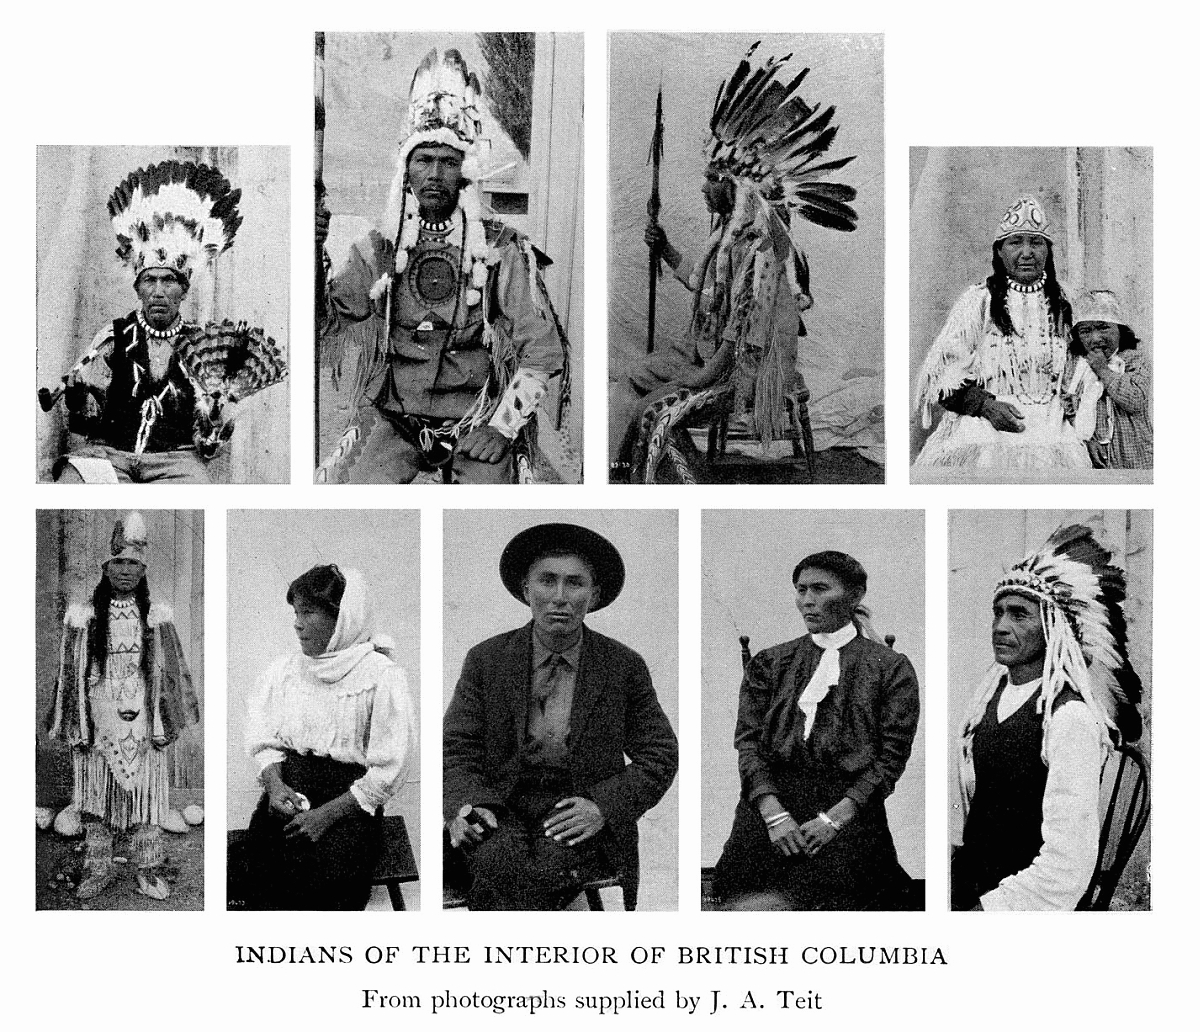 The dawn of canadian history by stephen leacock indians of the interior of british columbia from photographs made by the geological survey of canada fandeluxe Images